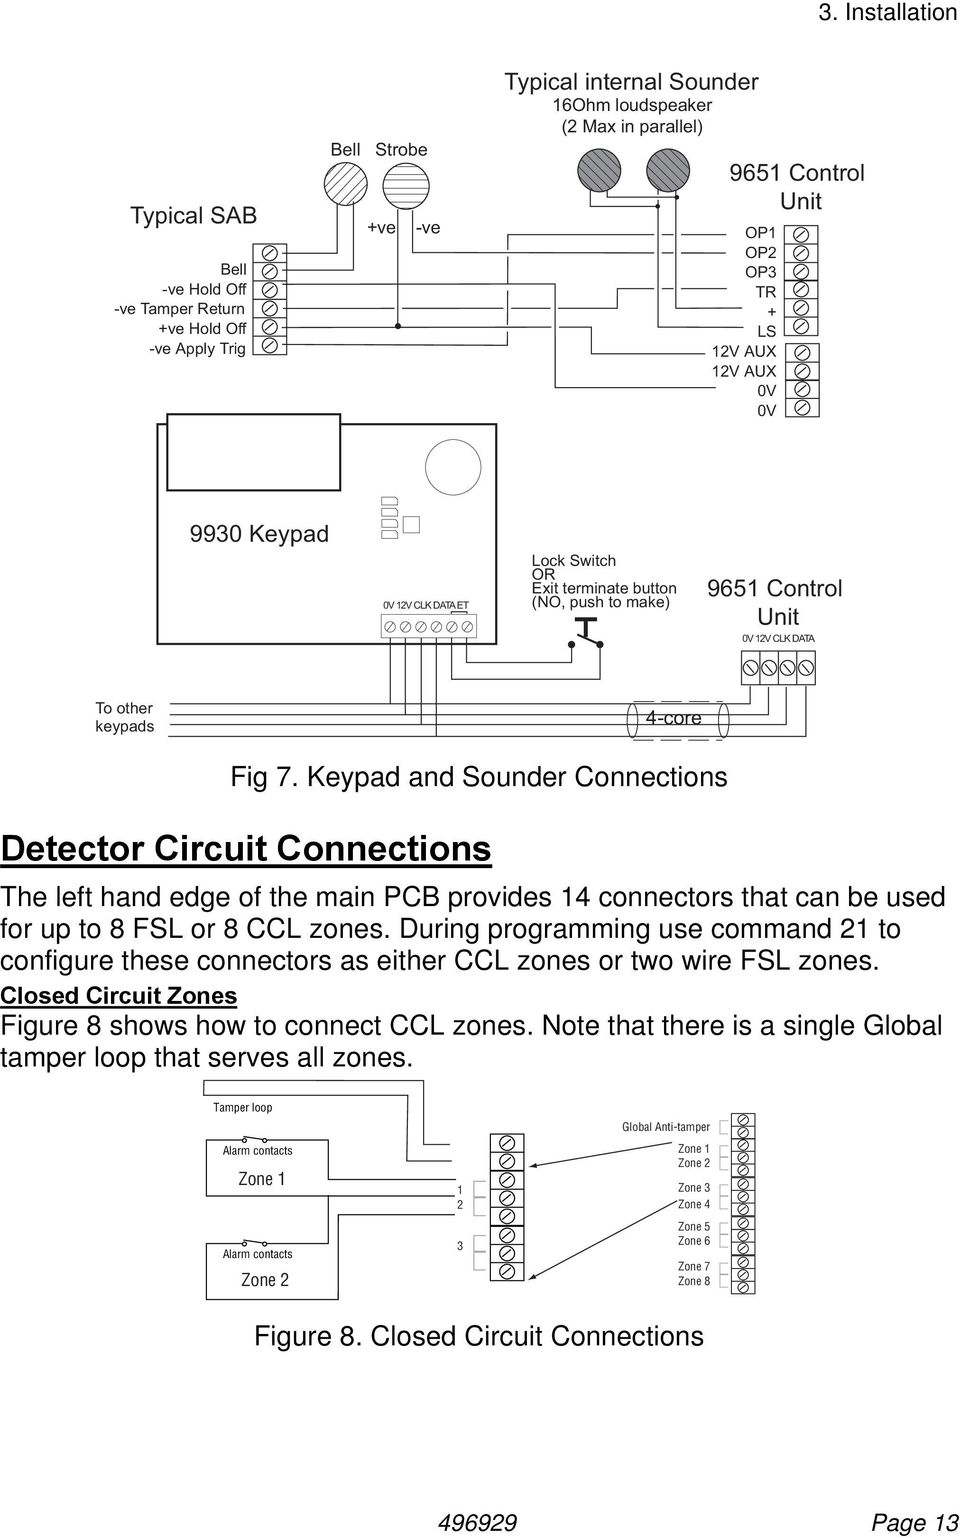 Installation And Programming Guide Hardwired Control Panel Pdf Block Diagram Unit Keypad Sounder Connections Detector Circuit The Left Hand Edge Of Main Pcb Provides